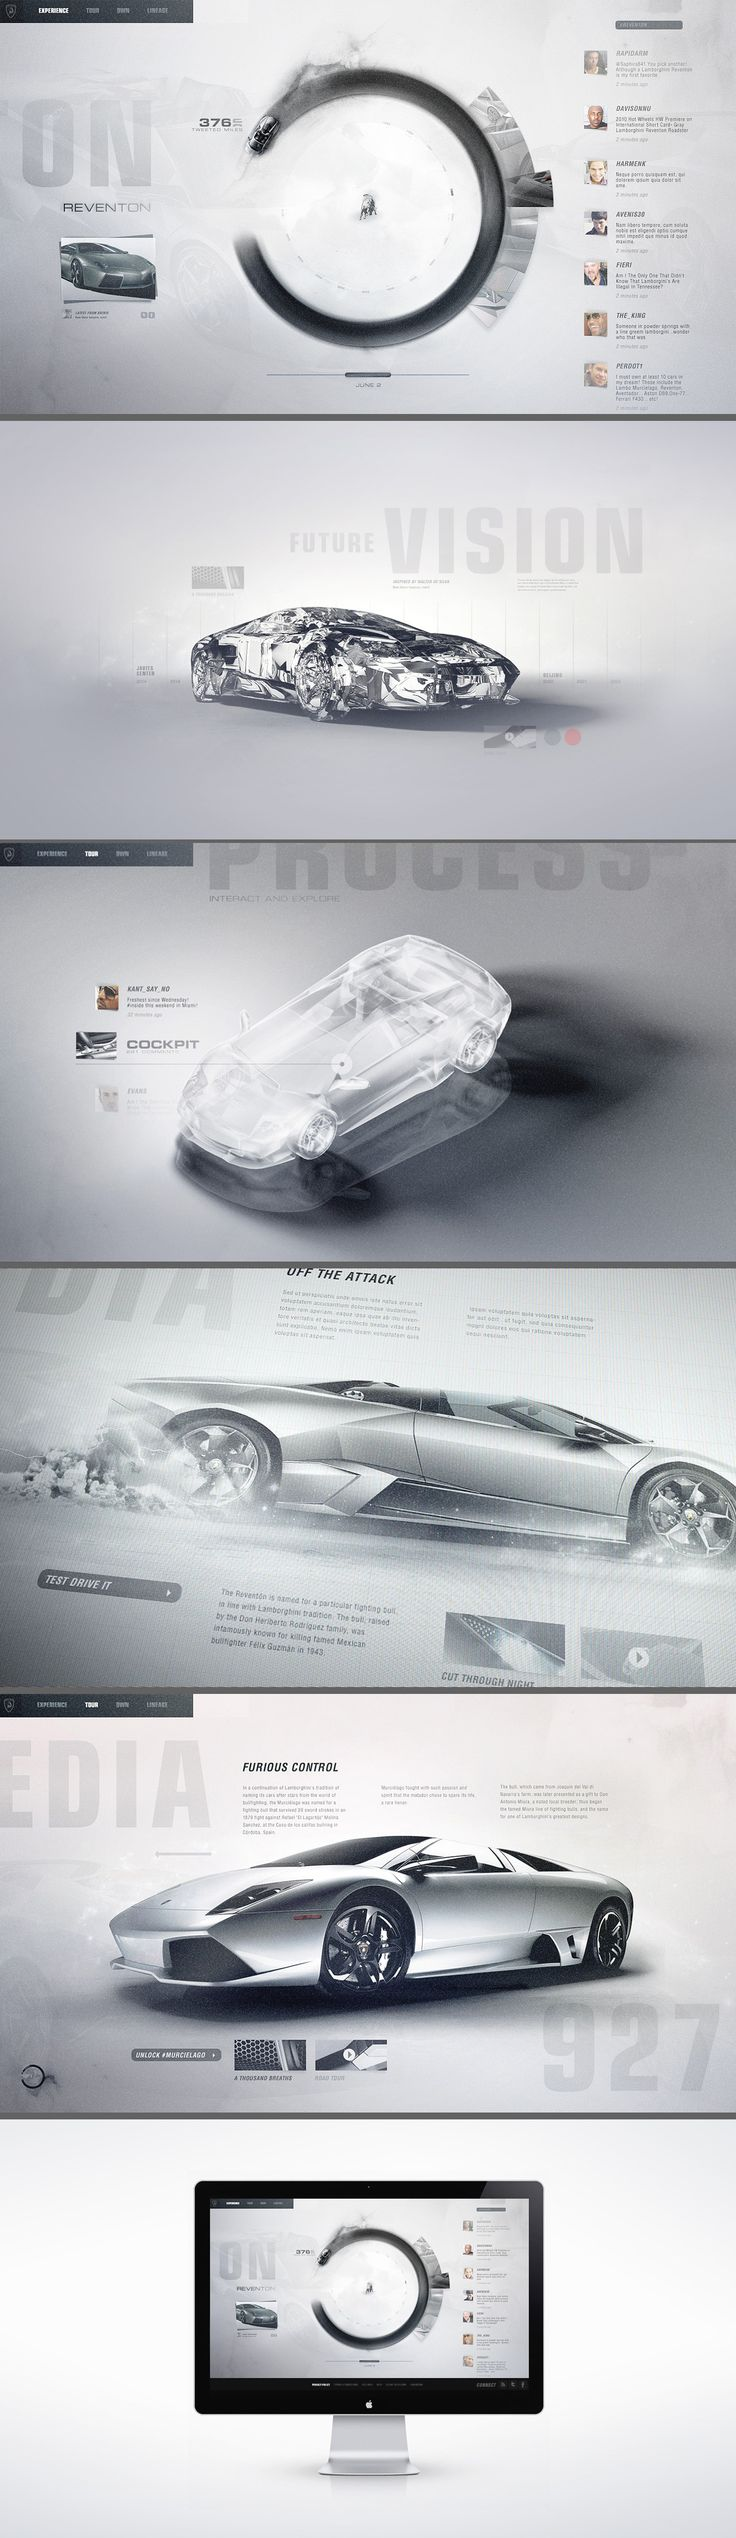 reventon lamborghini | #webdesign #it #web #design #layout #userinterface #website #webdesign <<< repinned by an #advertising #coffee #agency from #Hamburg / #Germany - www.BlickeDeeler.de | Follow us on www.facebook.com/BlickeDeeler